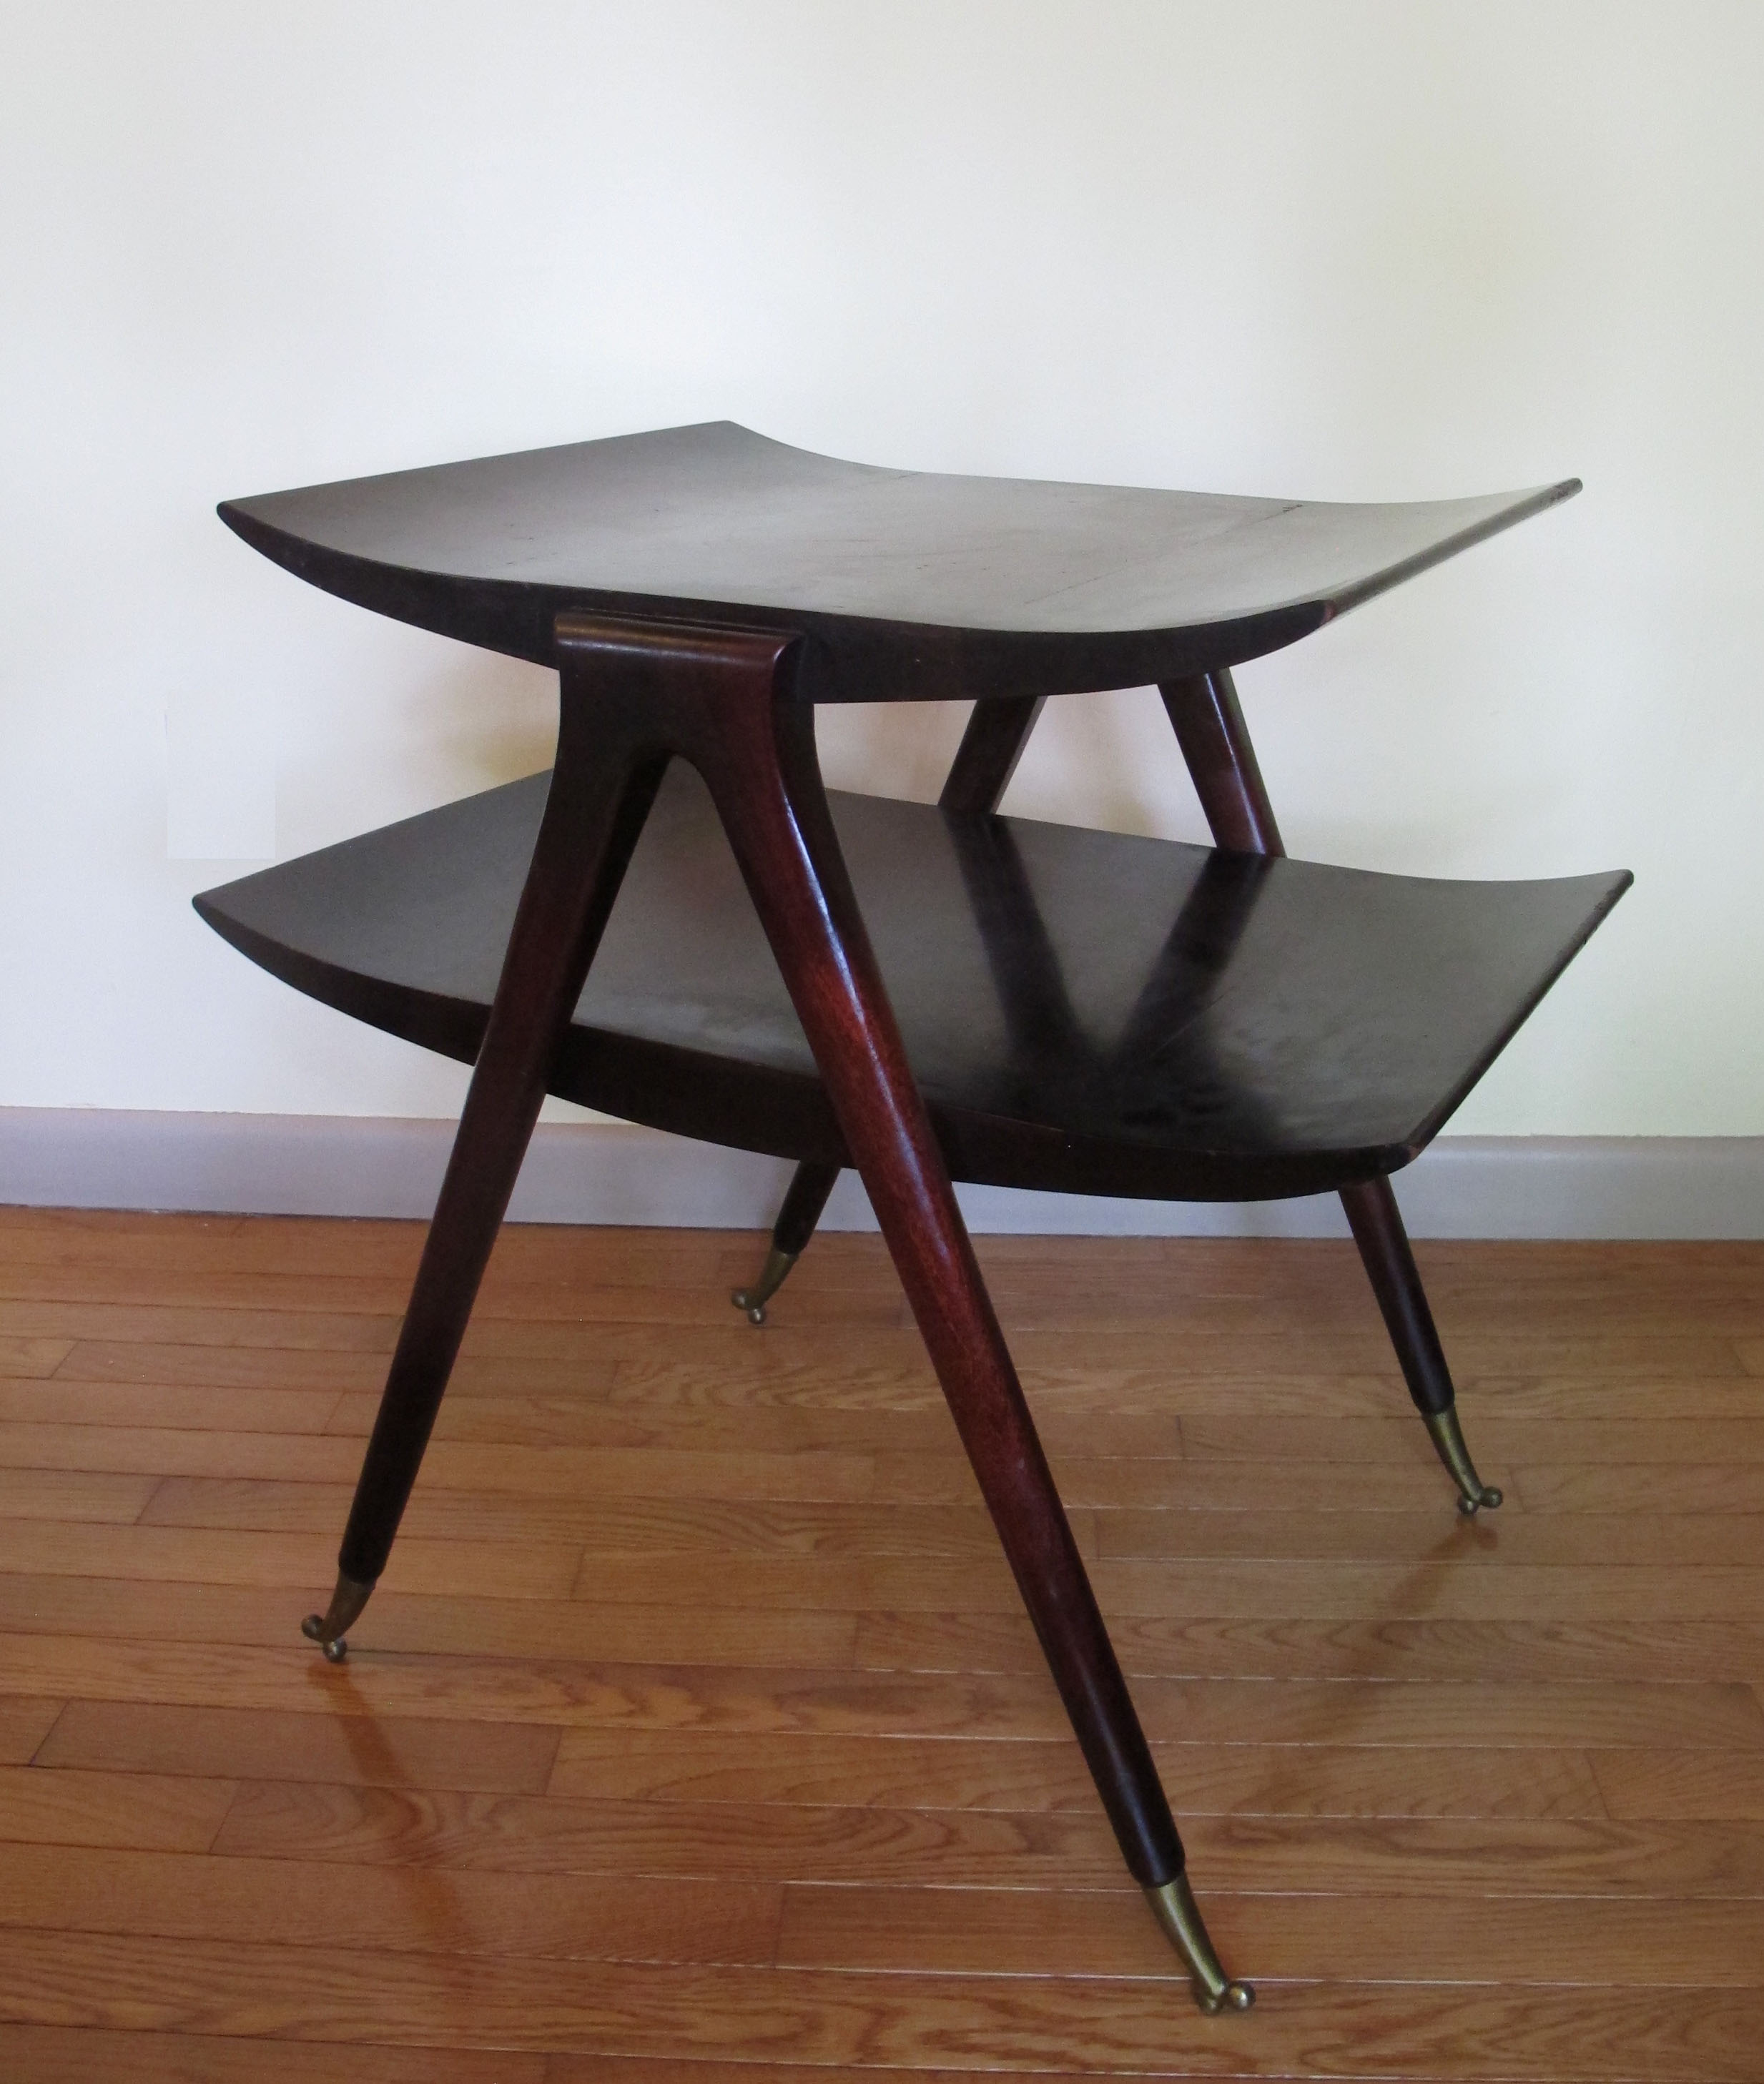 GIO PONTI STYLE TWO-TIER SIDE TABLE